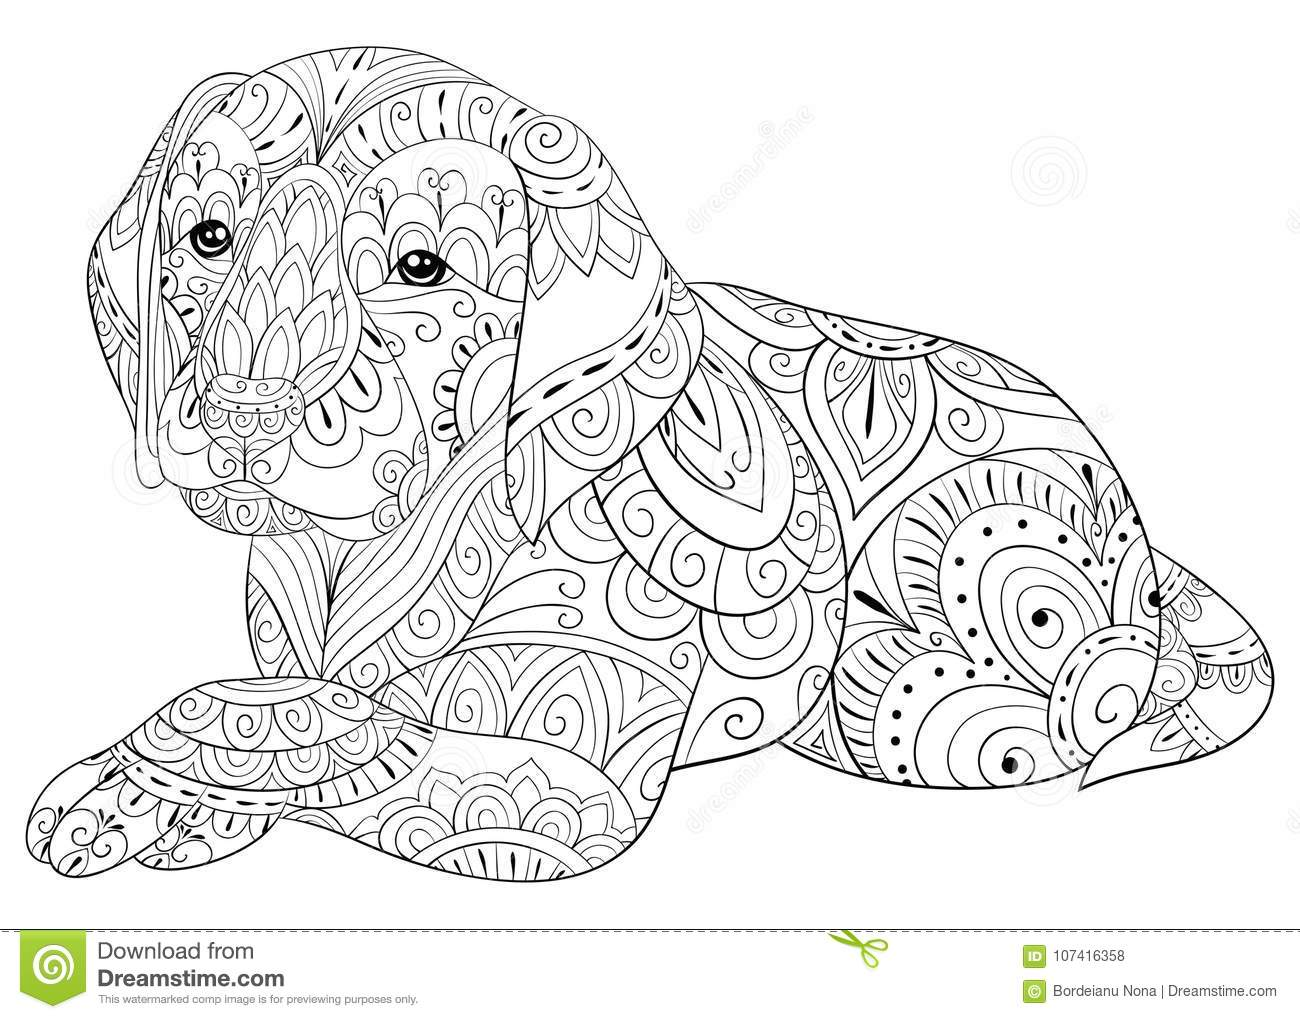 Adult Coloring Page A Cute Dog For Relaxing.Zen Art Style ...